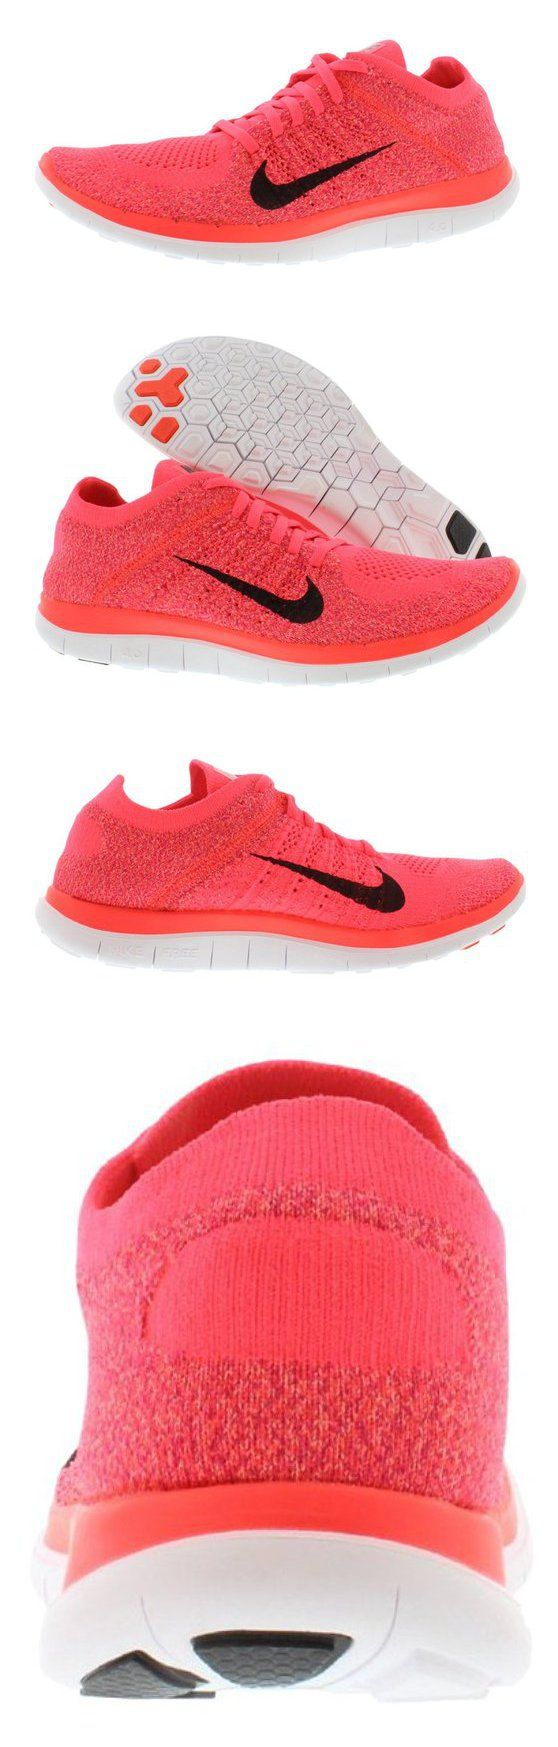 $129.99 - Nike Free Flyknit 4.0 Ladies Womens Running Shoes  Hyper Punch #shoes #sporting_goods #nike